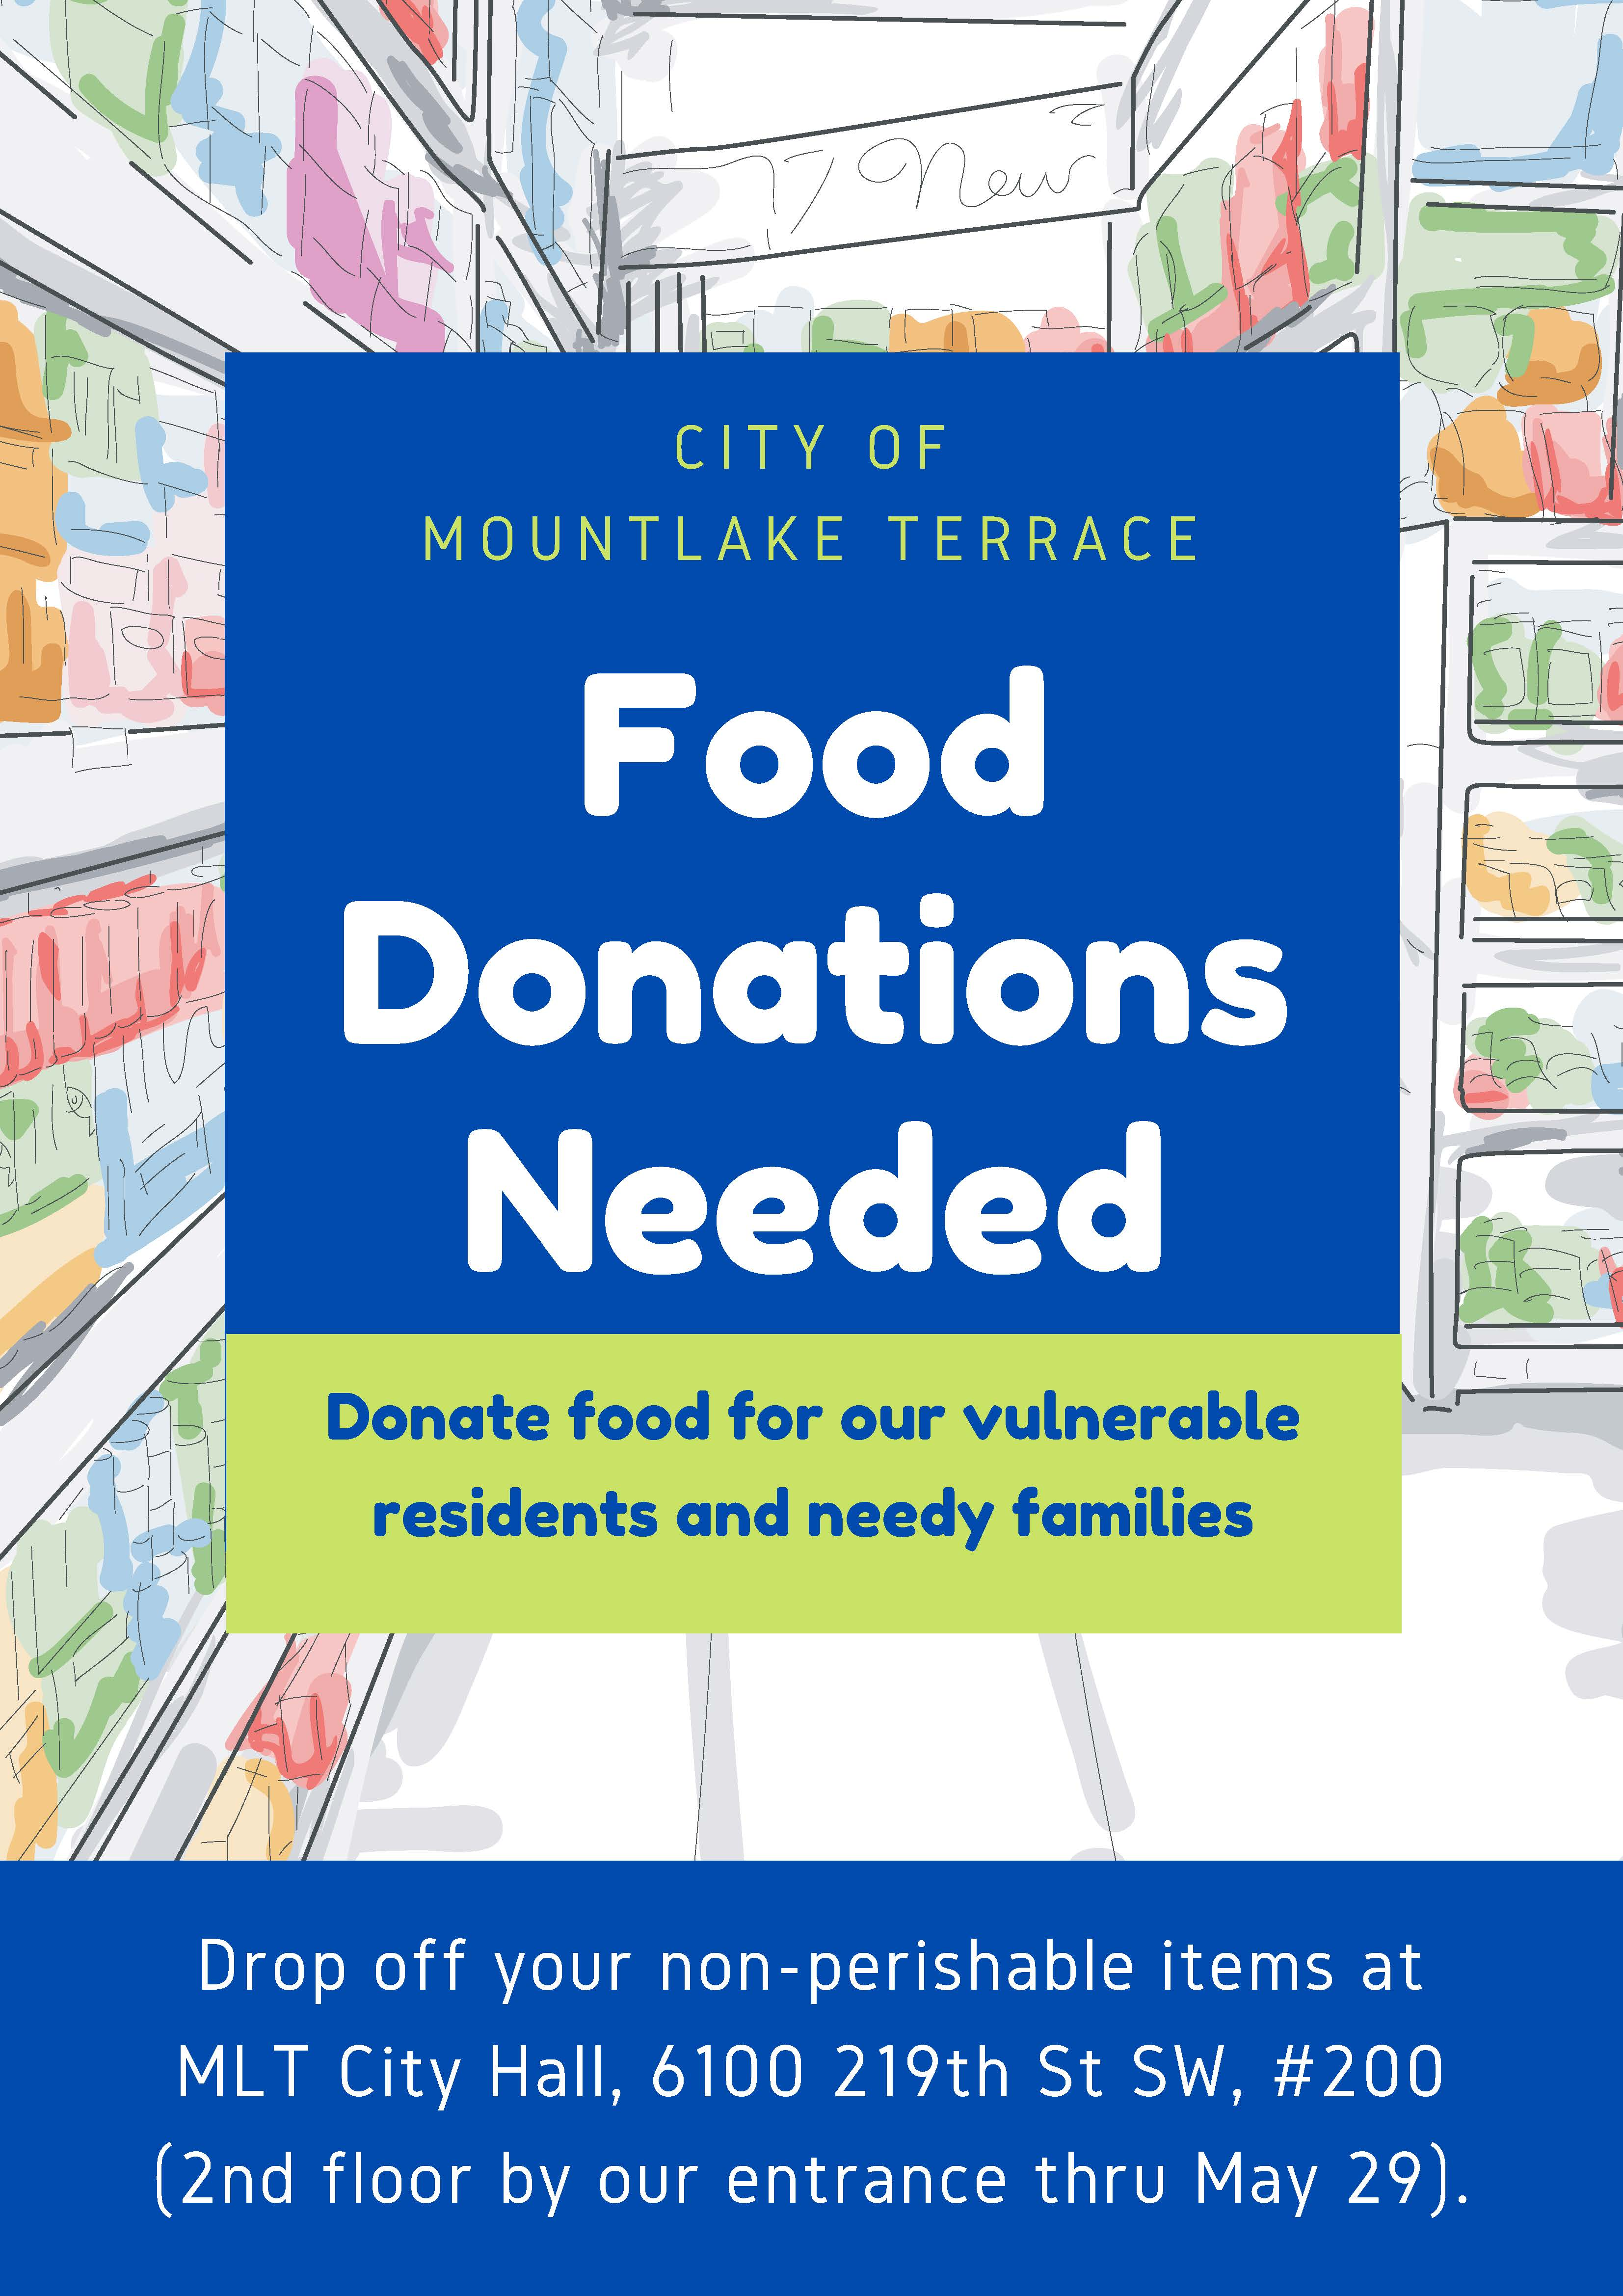 Food Drive_Public Poster_5_7_2020